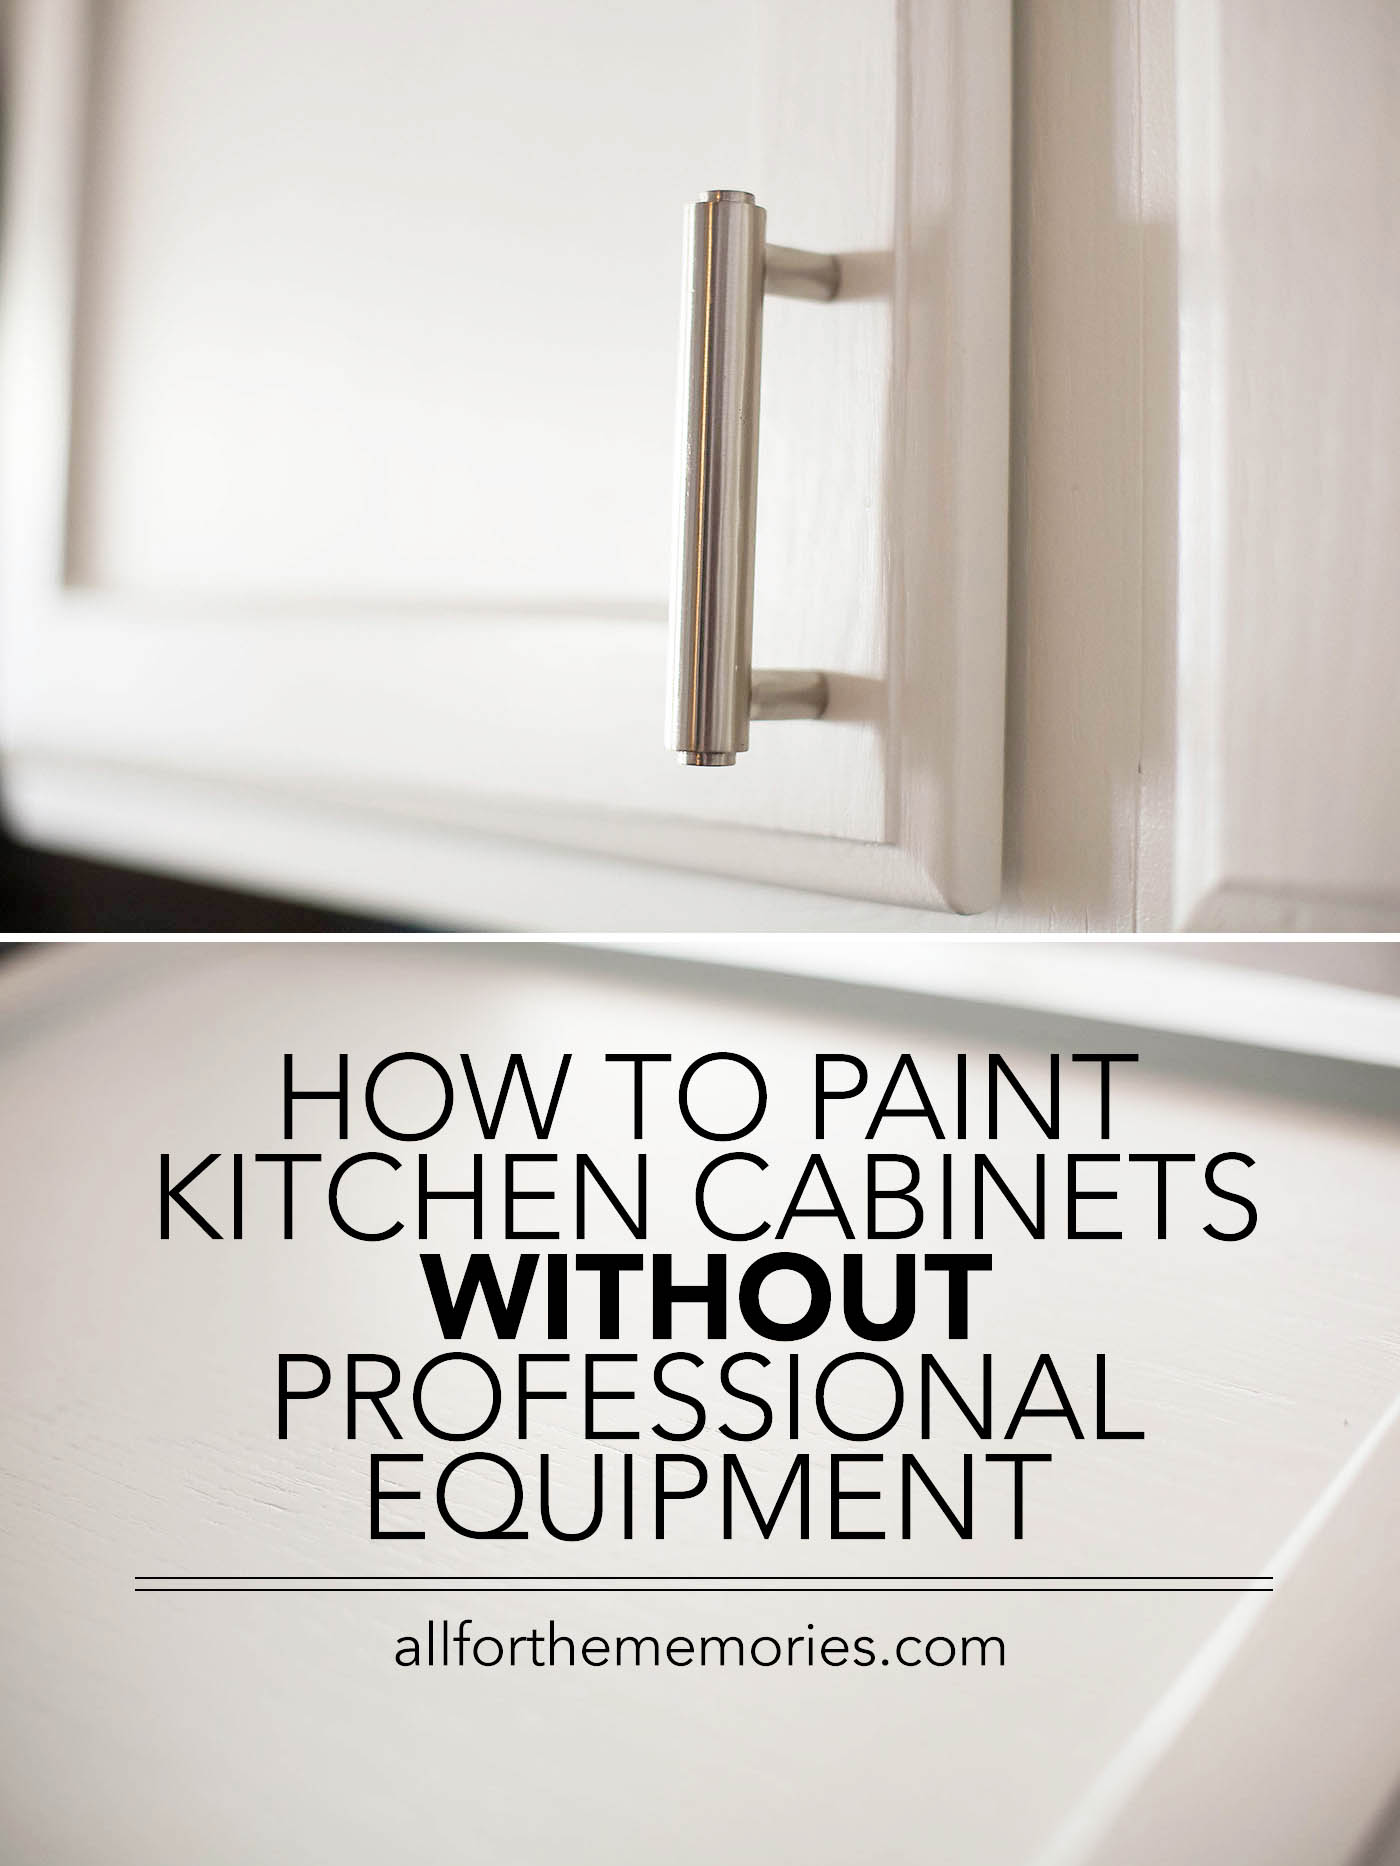 How to paint kitchen cabinets all for the memories for Best way to buy kitchen cabinets